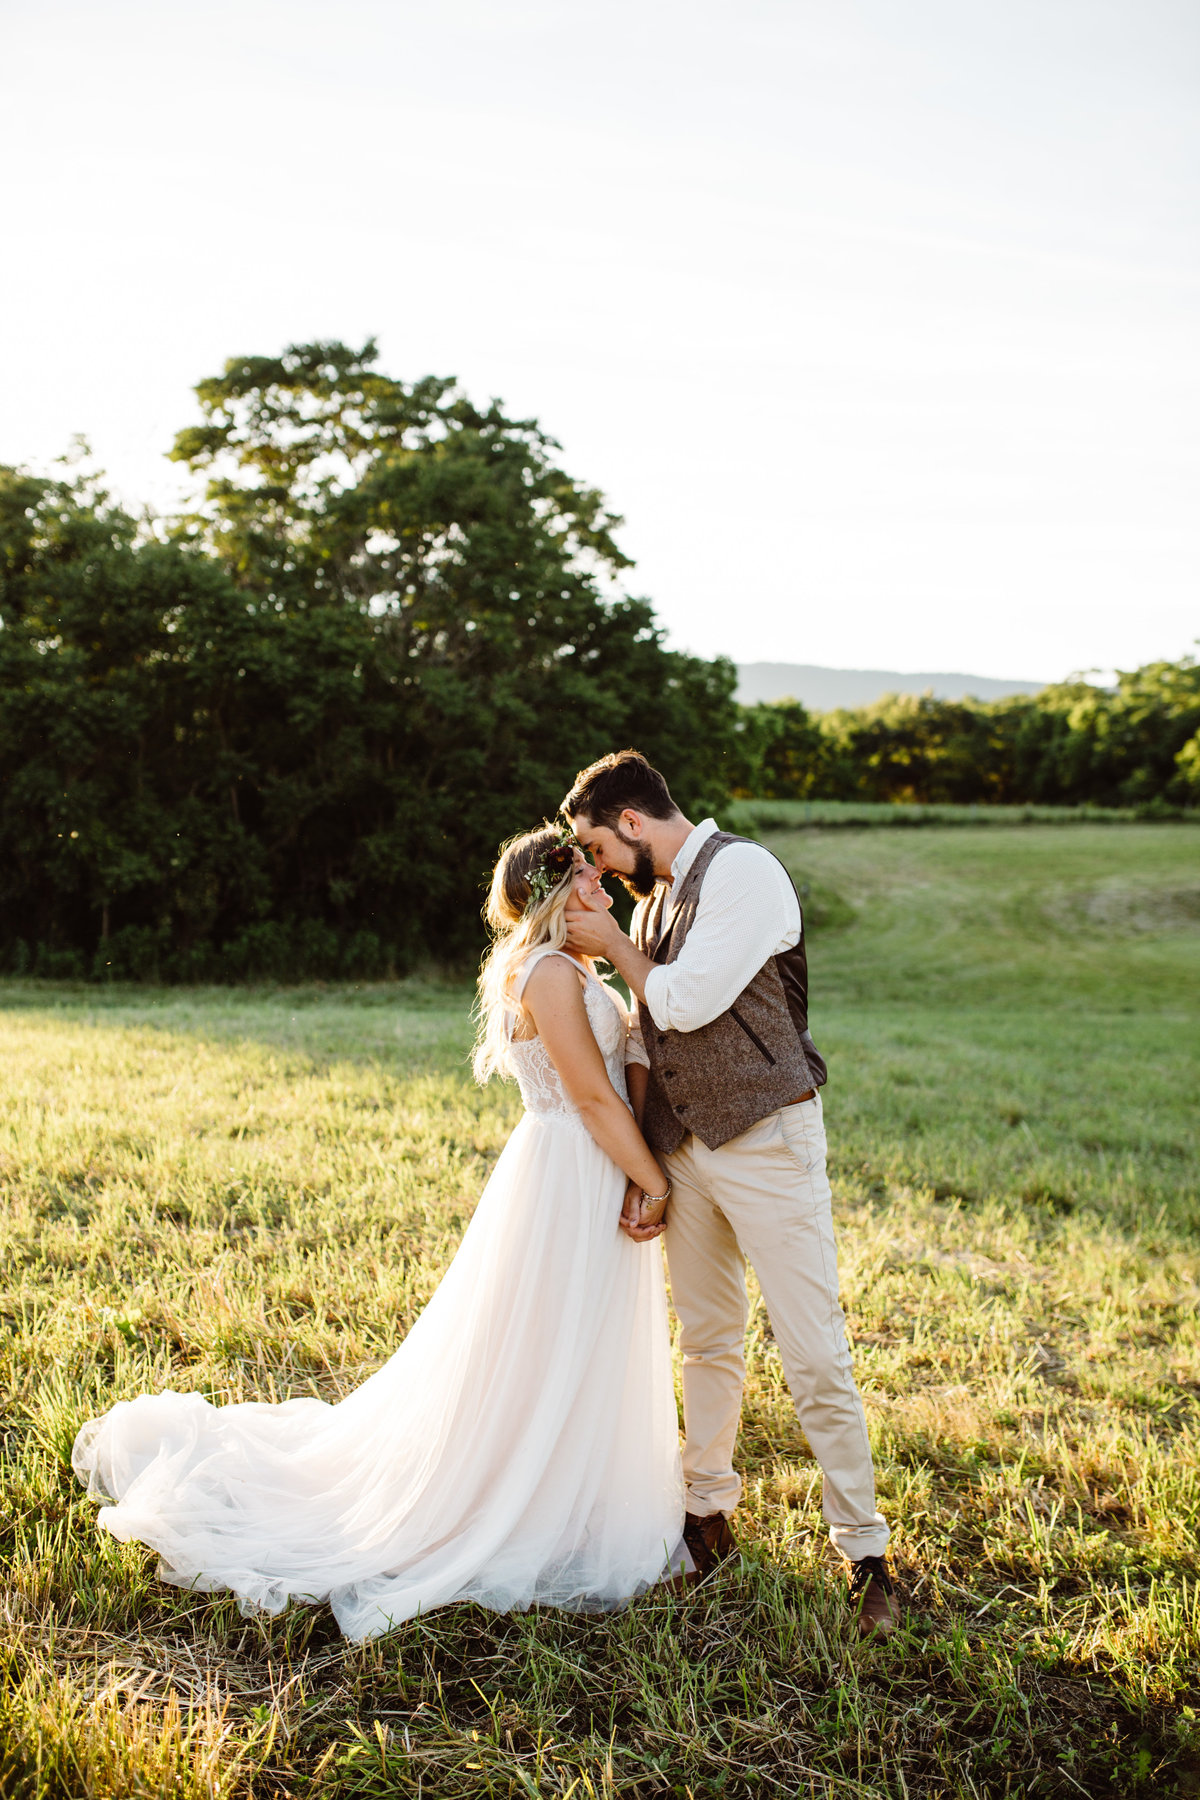 Virginiawedding-Holdenjessie-775